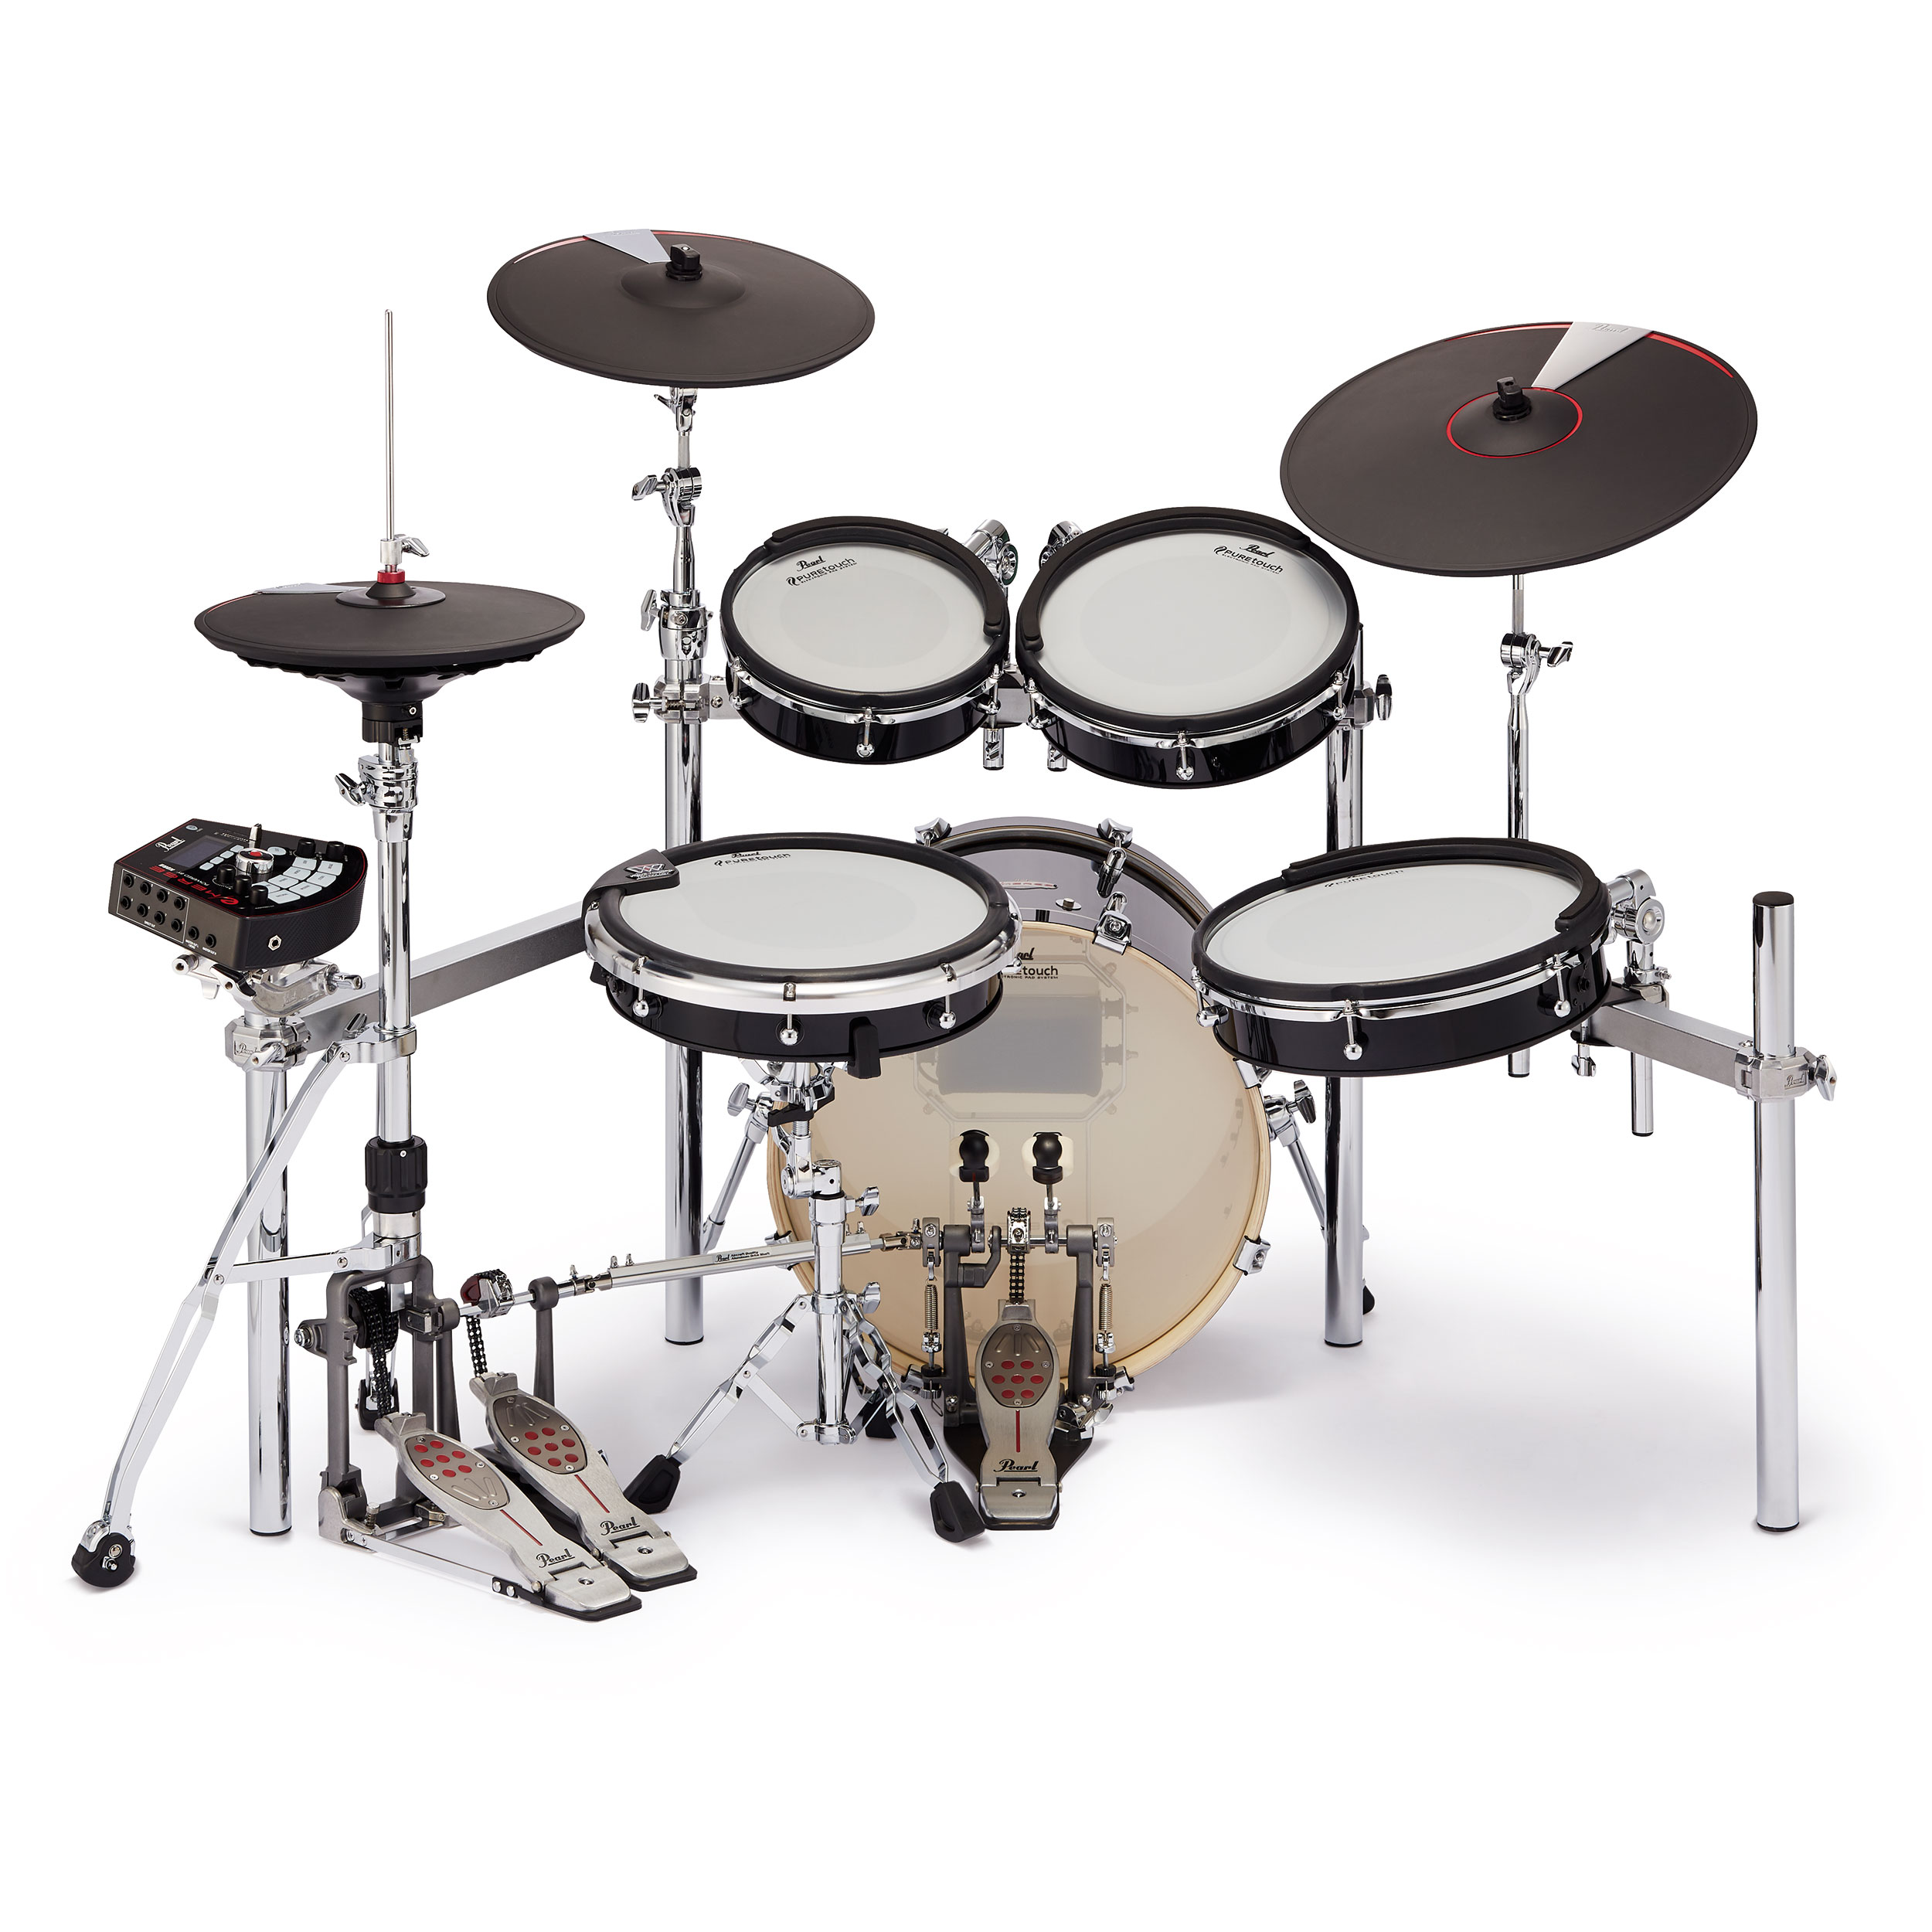 """Pearl e/MERGE 5-Piece Hybrid Electronic Drum Set with Hardware and Cymbal Pads (18"""" Bass, 10/12/14"""" Toms, and 14"""" Snare Pads)"""